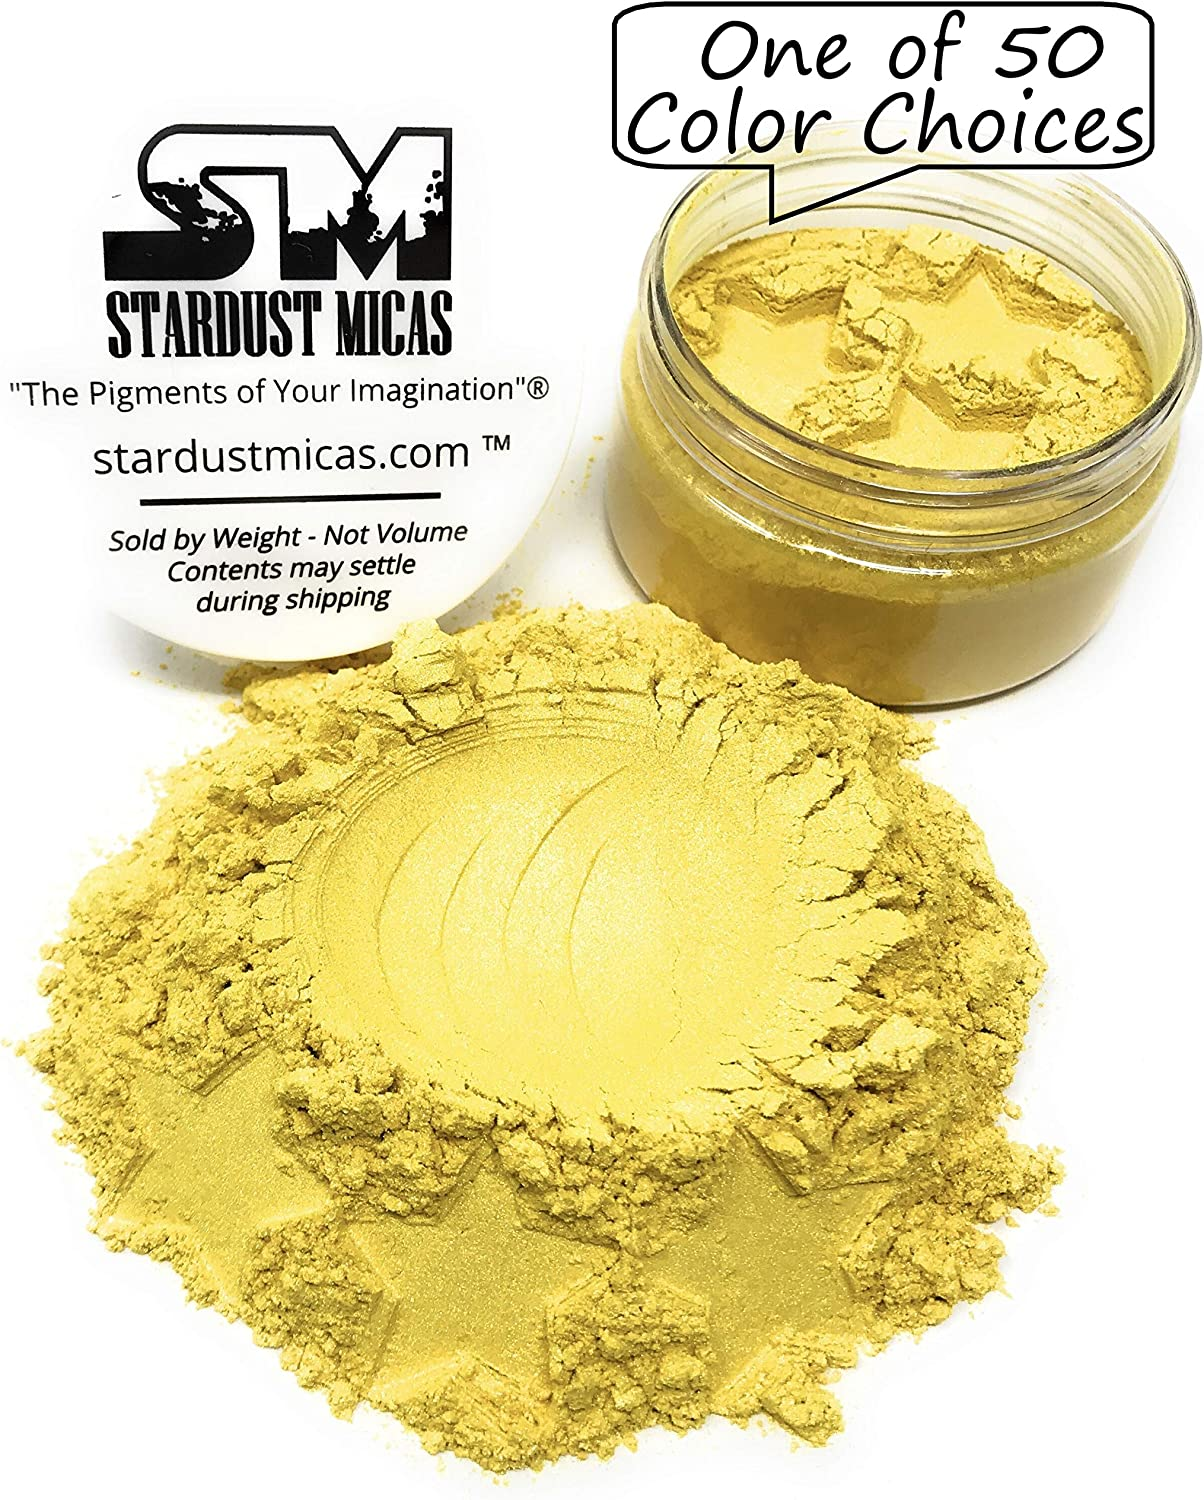 Stardust Mica Powder Pigment Cosmetic Grade Colorant for Makeup, Soap Making, Epoxy Resin, DIY Crafting Projects, Bright True Colors Stable Mica Batch Consistency Yellow Zest